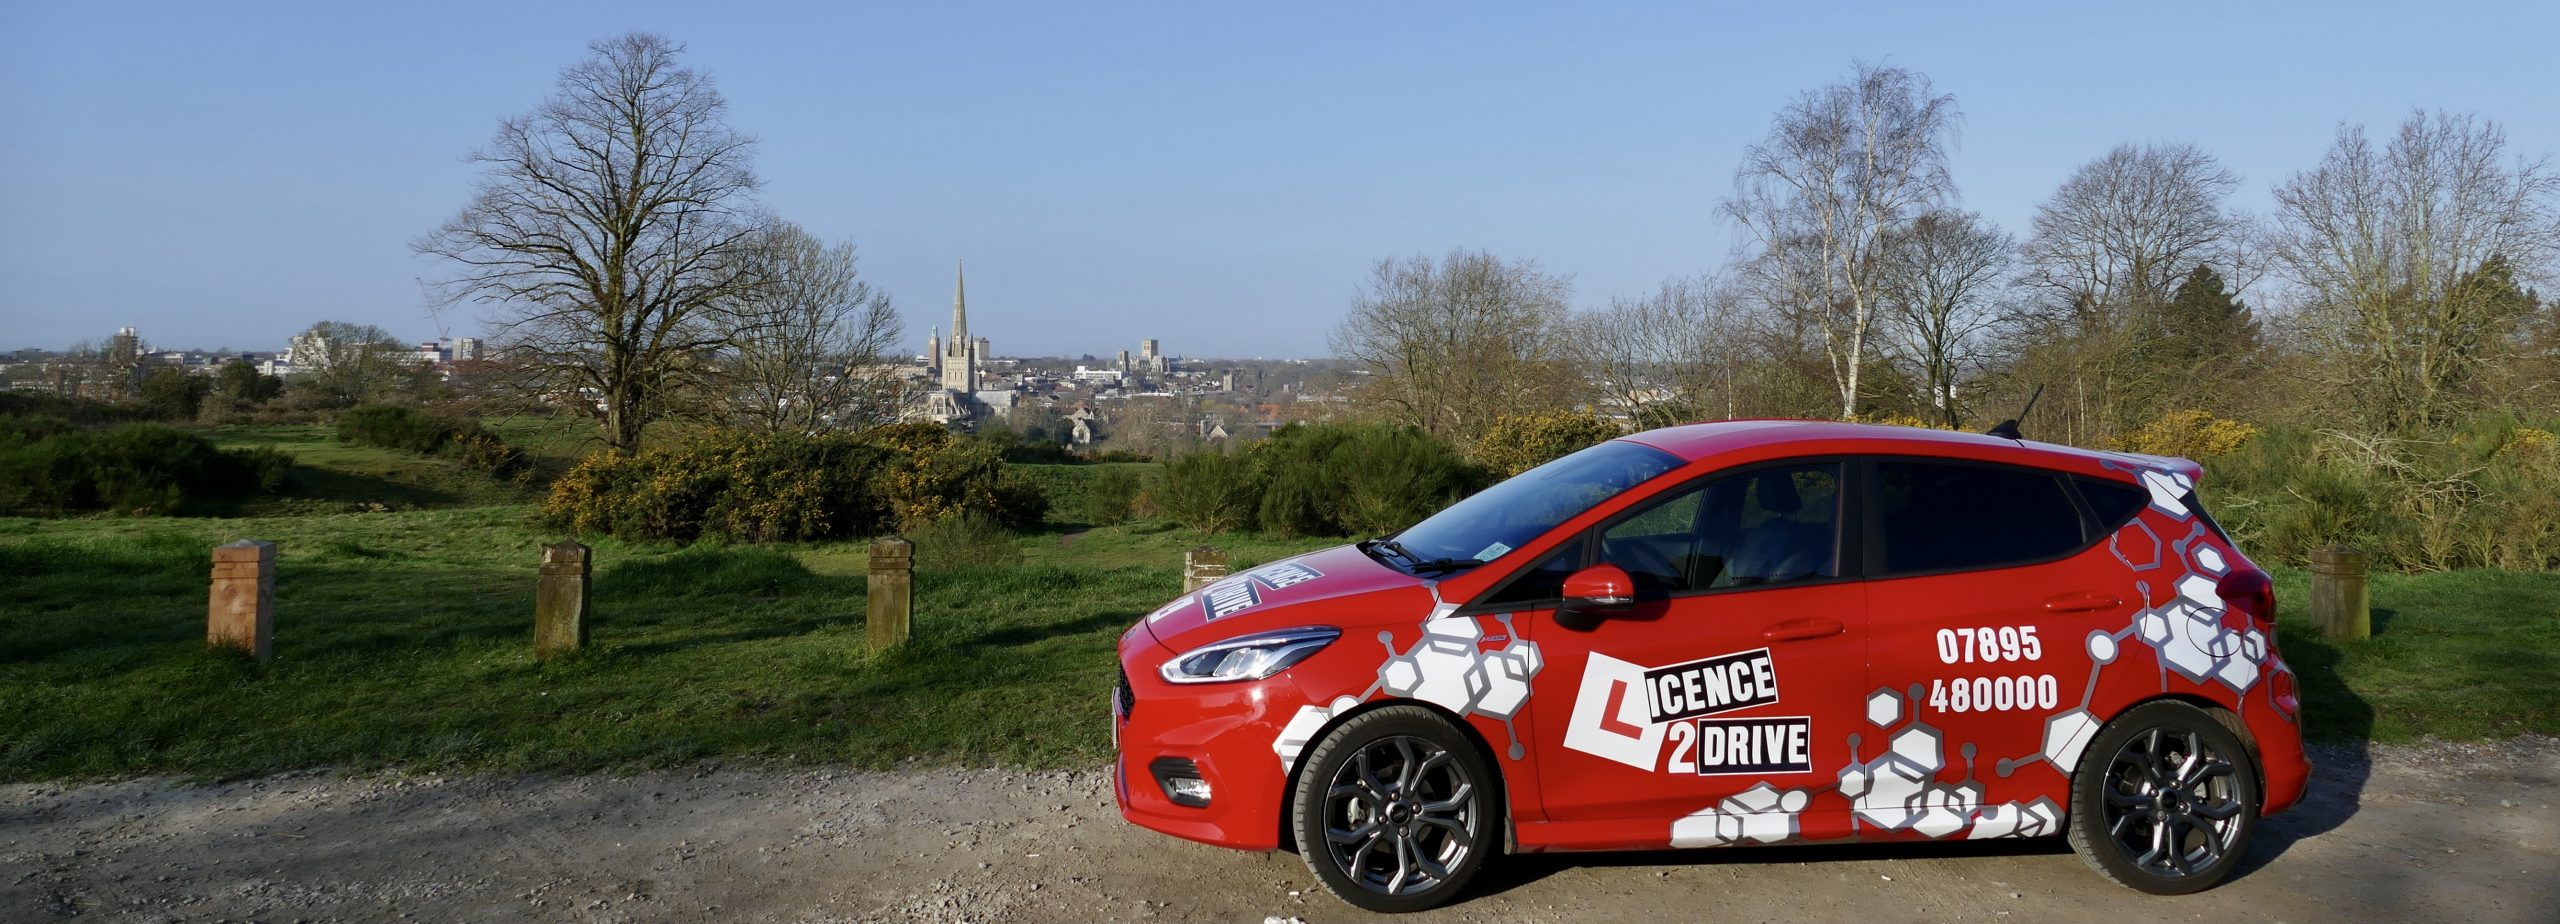 Licence2Drive Car and view over Norwich